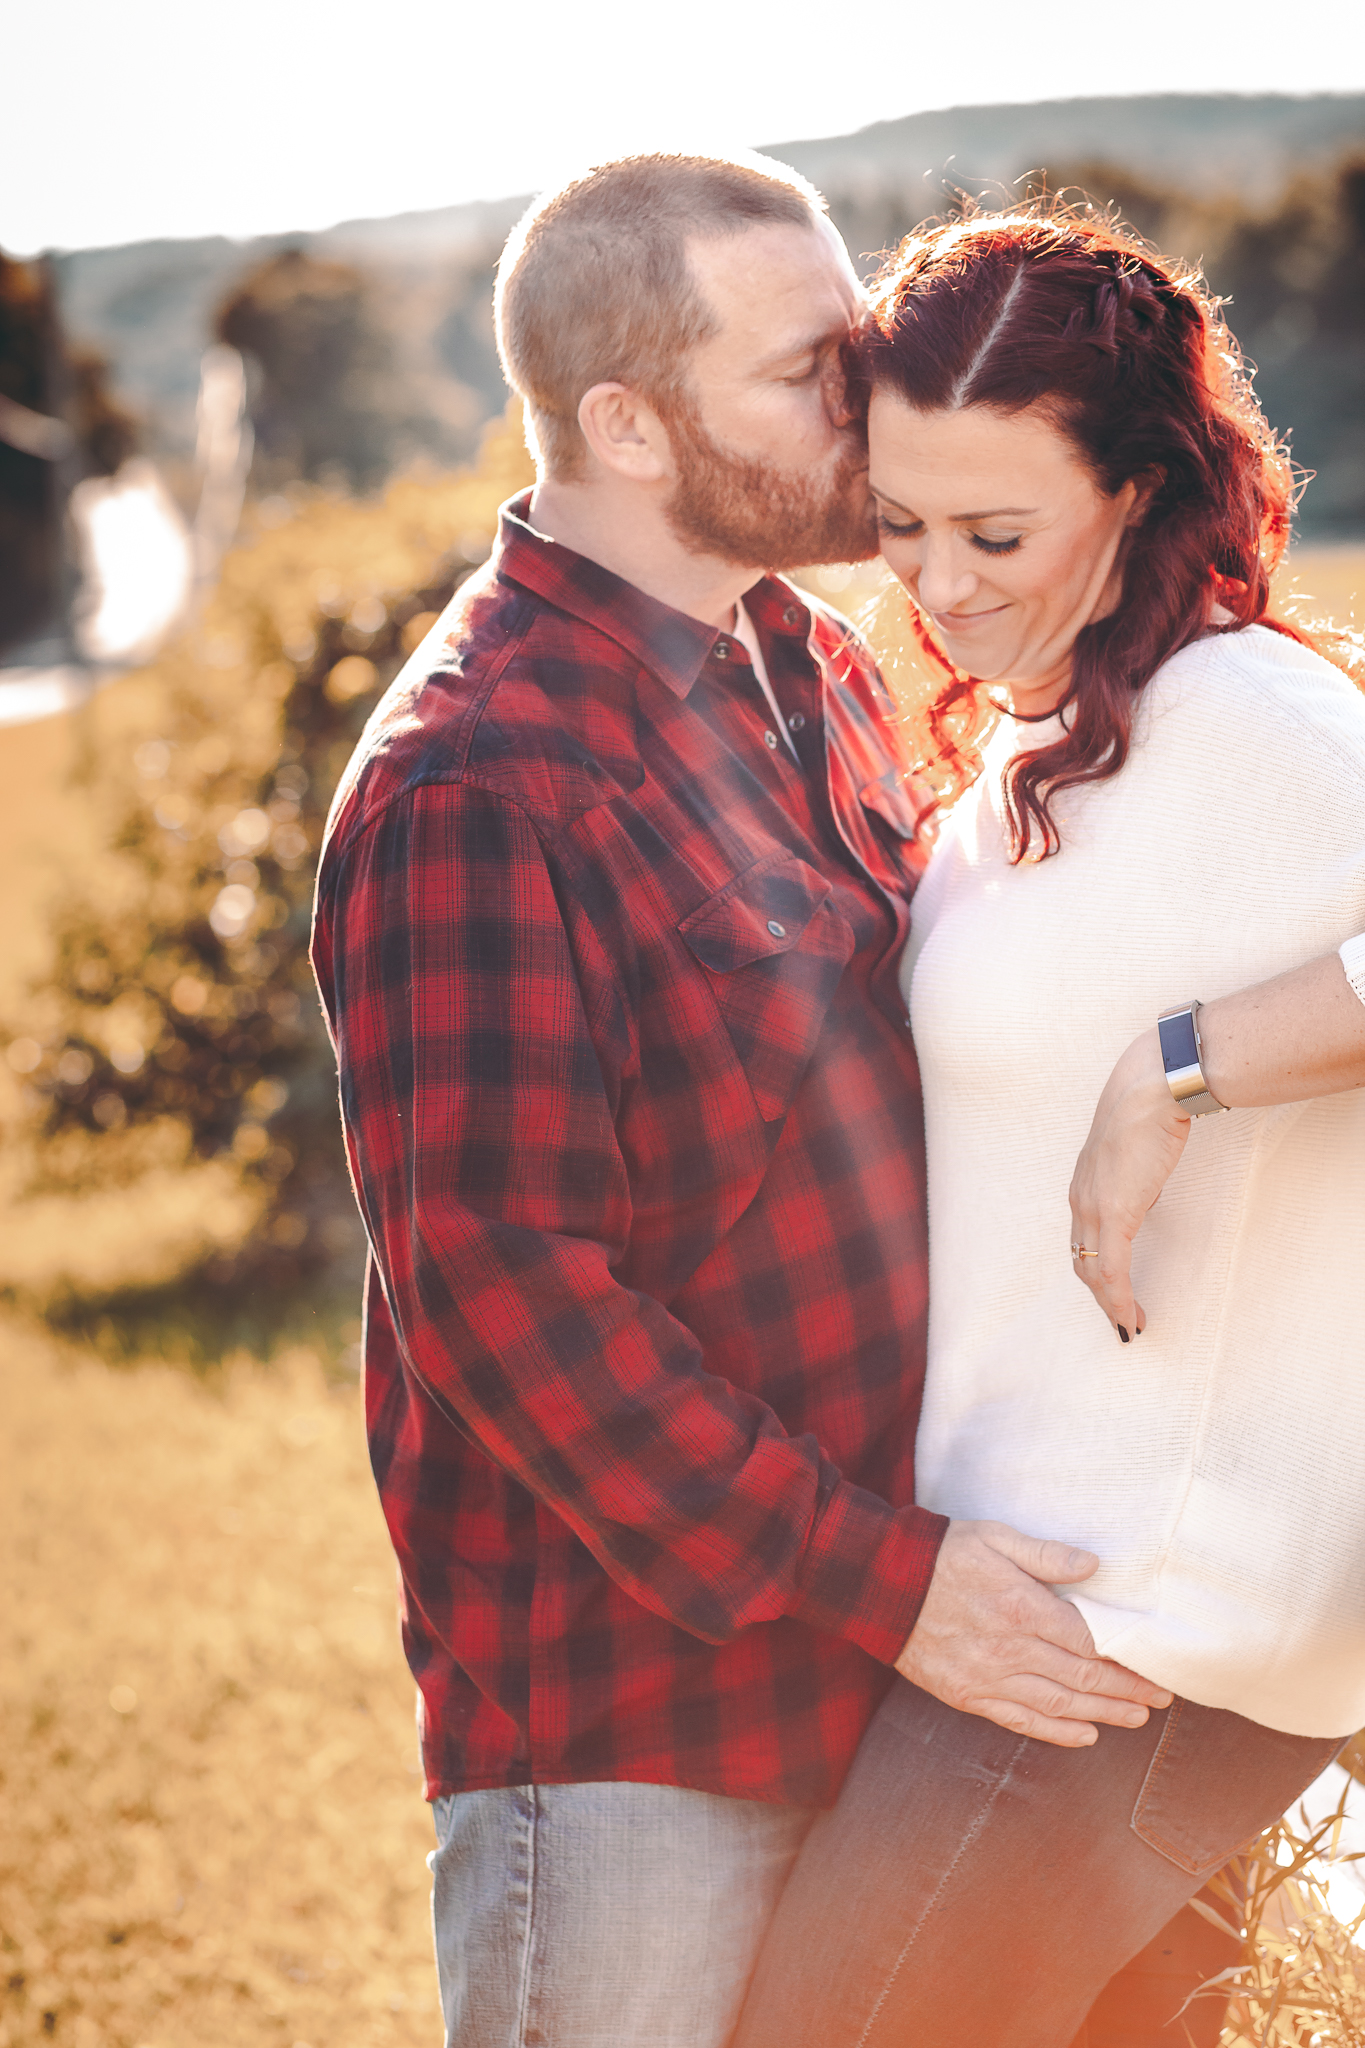 Amy D Photography- Barrie Wedding Photography- Engagement Session- Fall Engagement- Engagement Poses- Barrie Weddings- Wedding Photographer-37.jpg